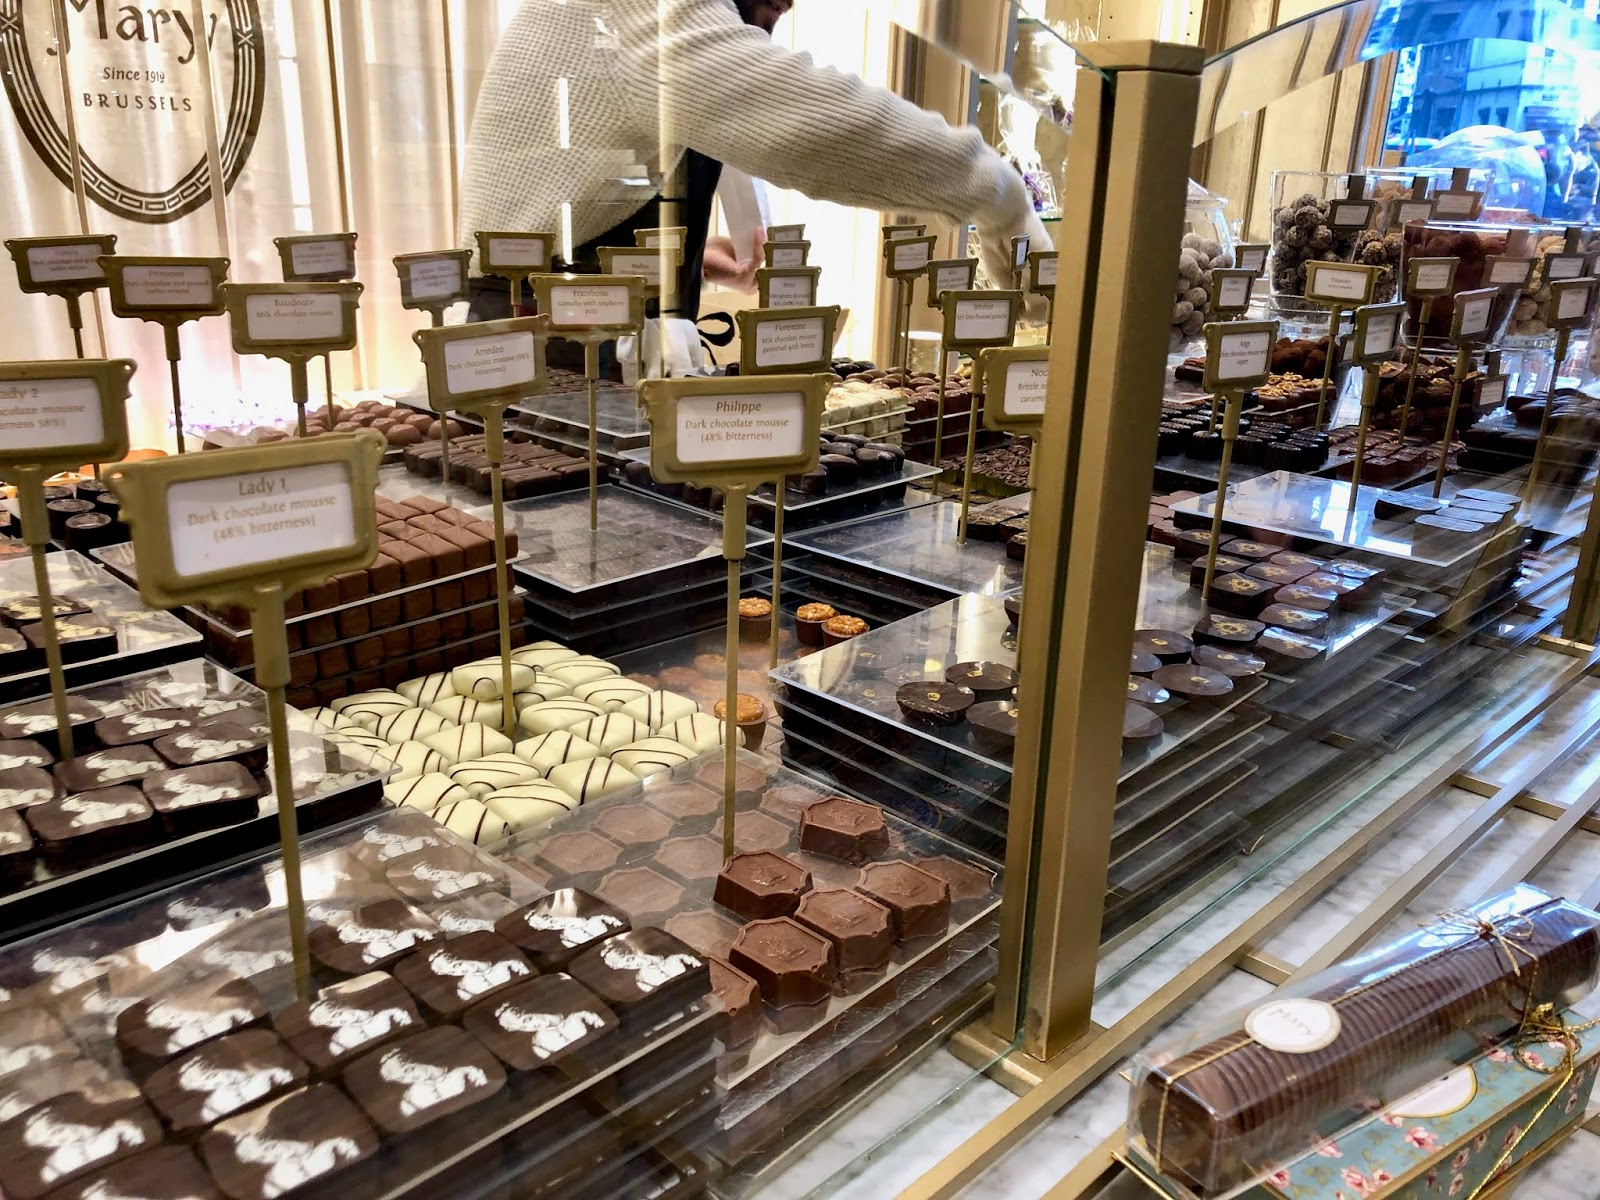 Mary chocolate shop in Brussels, Belgium